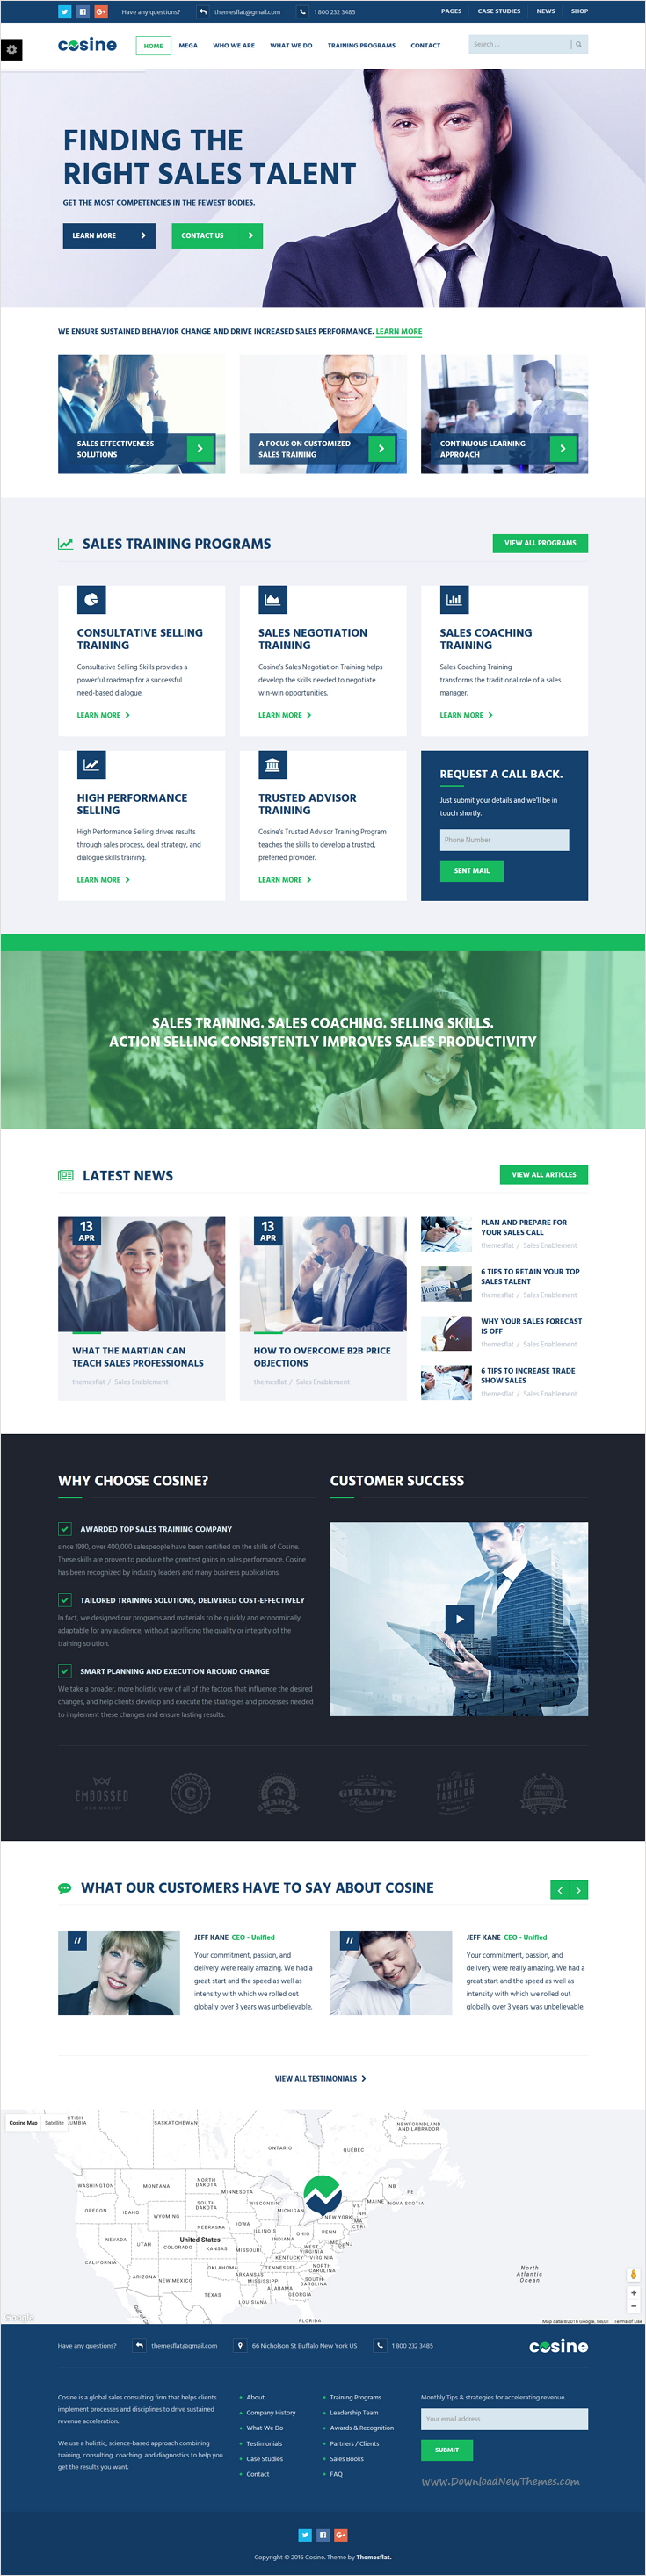 Cosine training coaching business html template template and cosine is wonderful bootstrap html template for edtech training coaching or newsletter spiritdancerdesigns Gallery